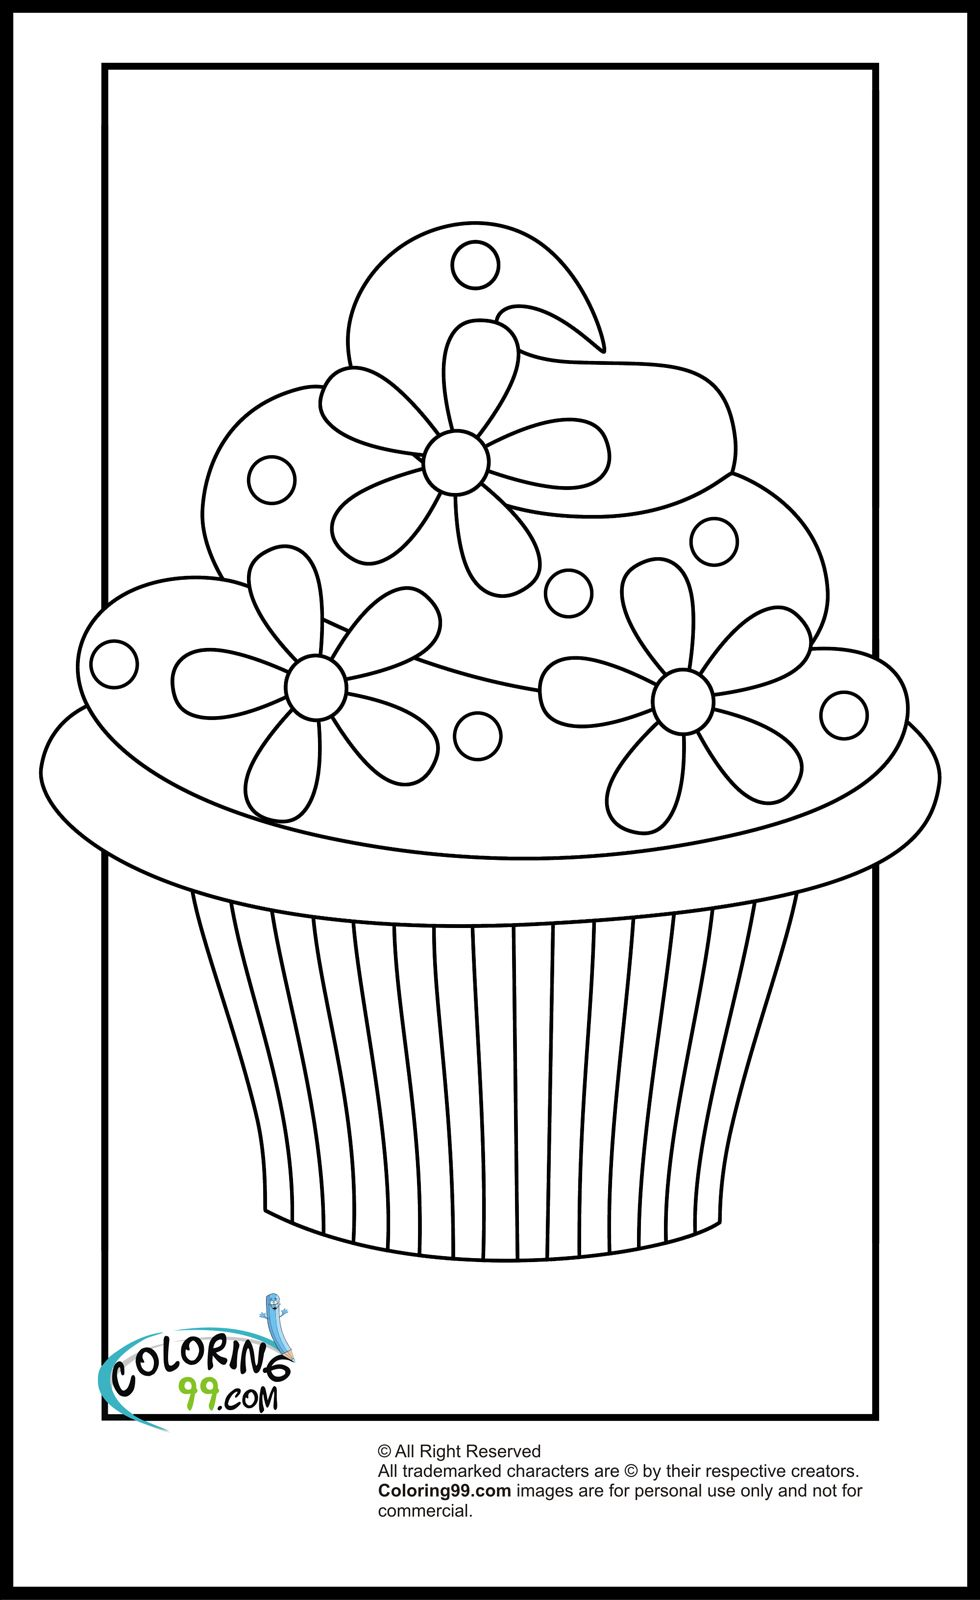 Cupcake Coloring Pages | Coloring99.com | Dibujos - Cupcakes ...